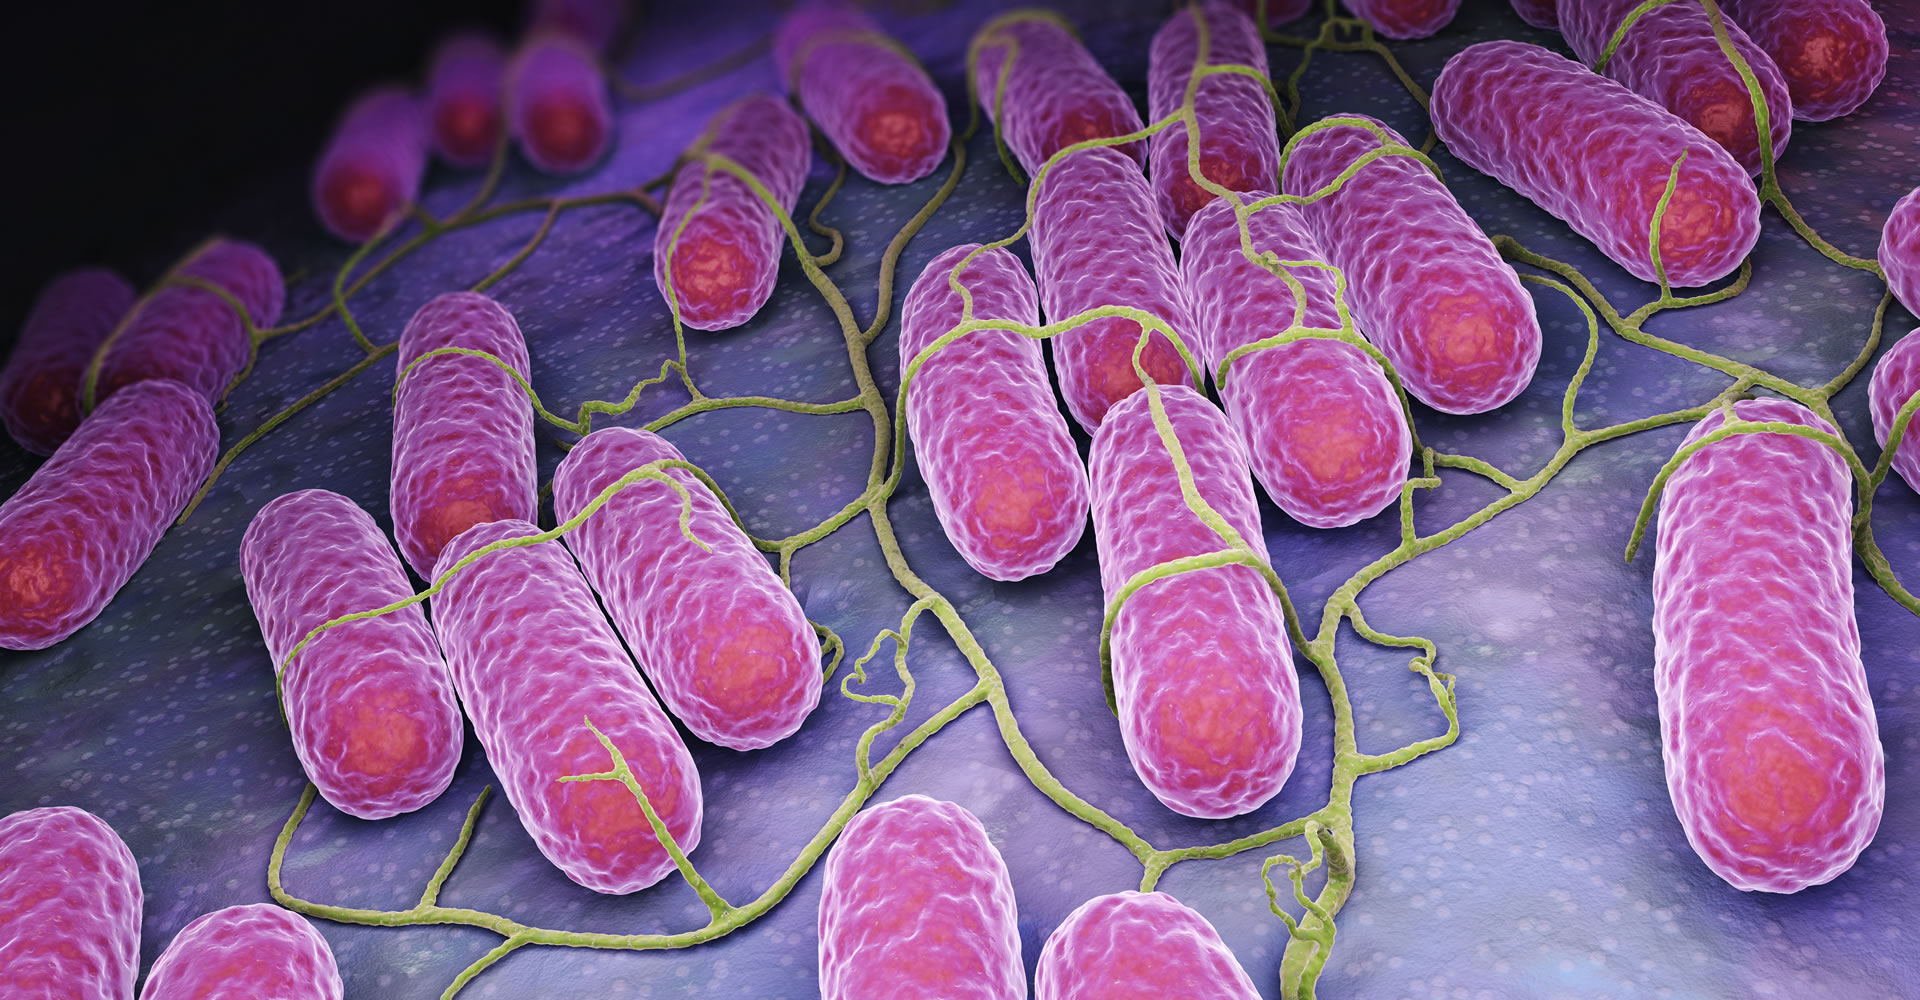 KILLING MULTIDRUG RESISTANT BACTERIA AND FUNGI IN MINUTES